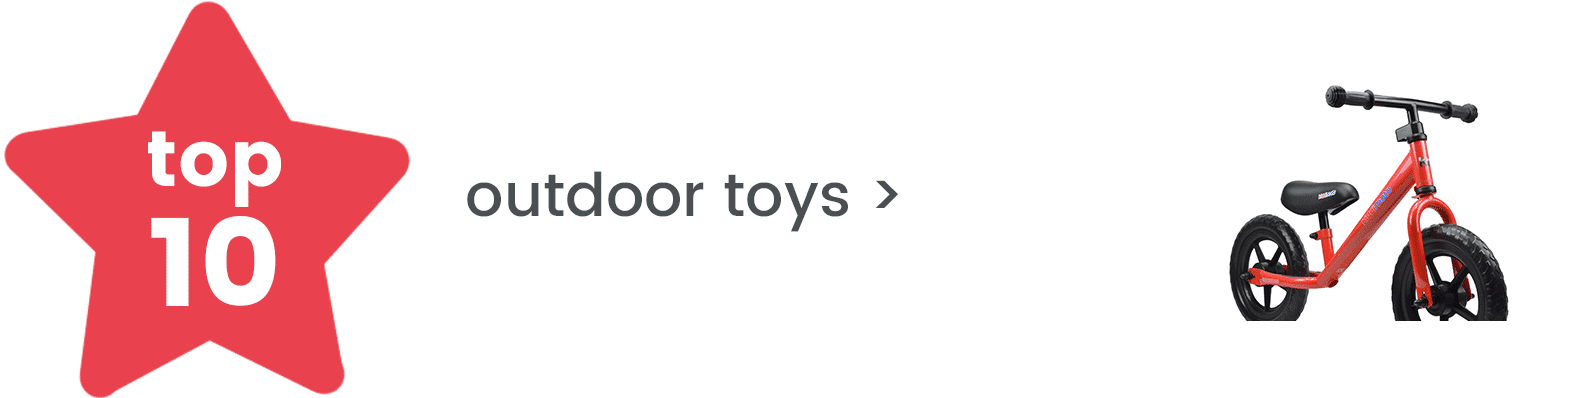 top 10 outdoor toys